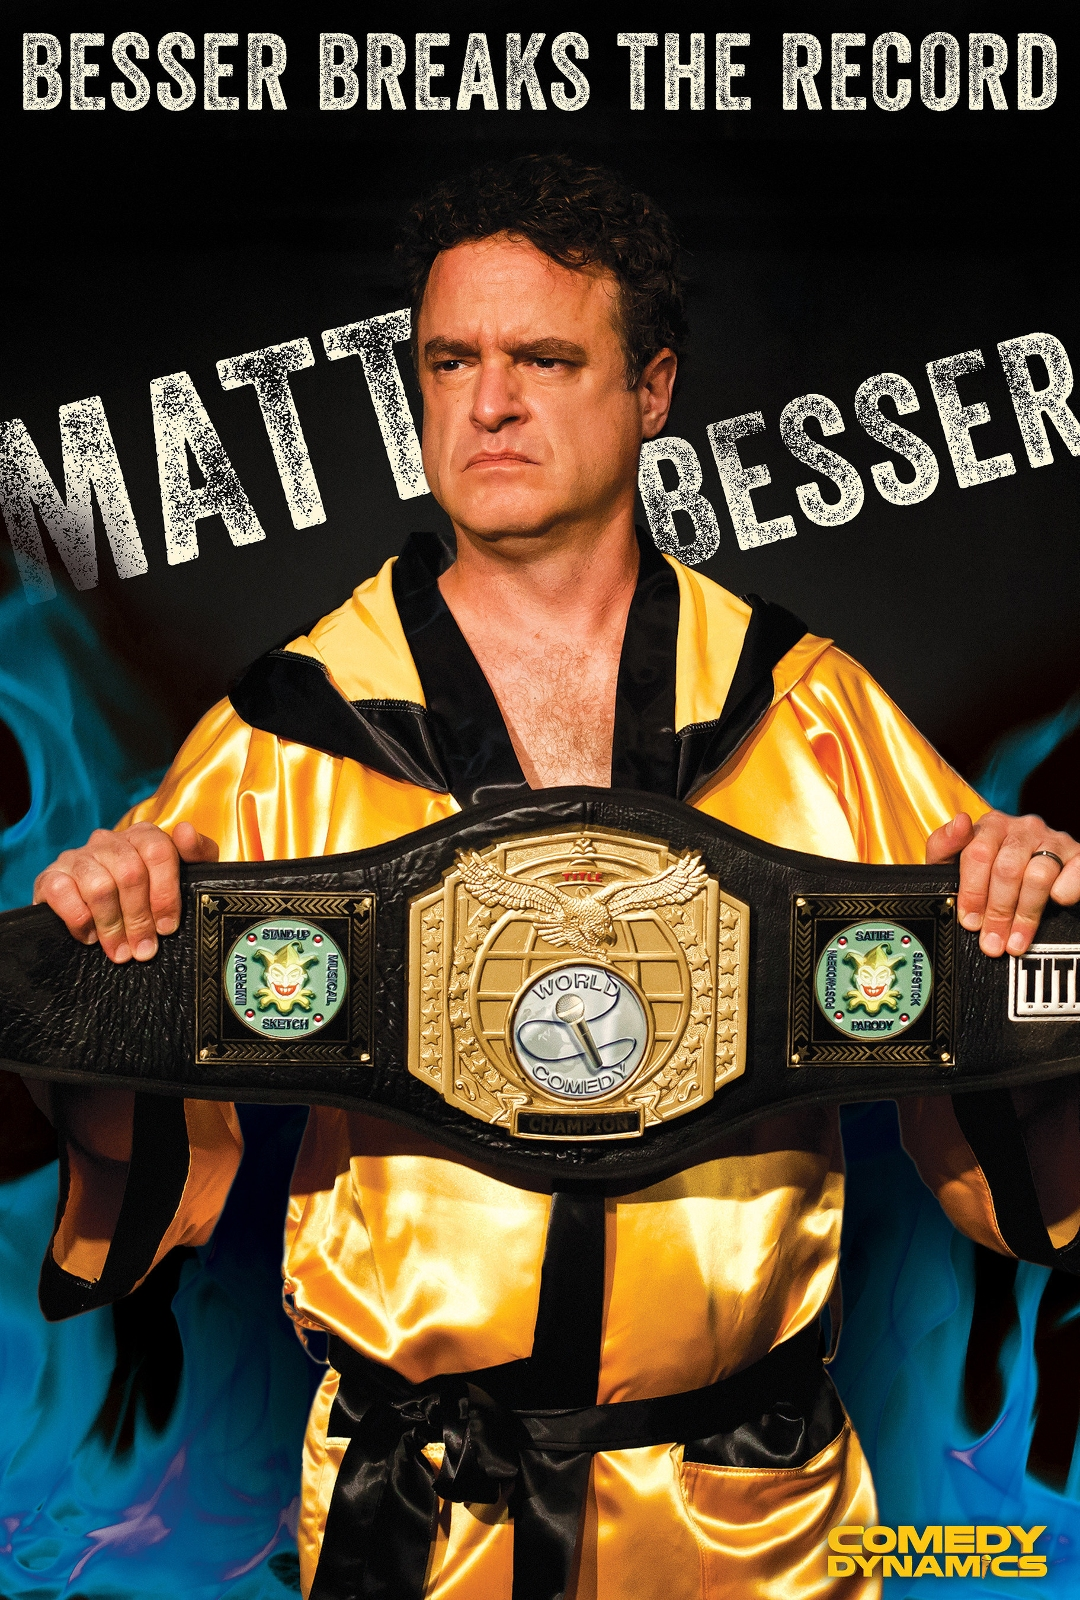 Matt Besser Breaks The Record